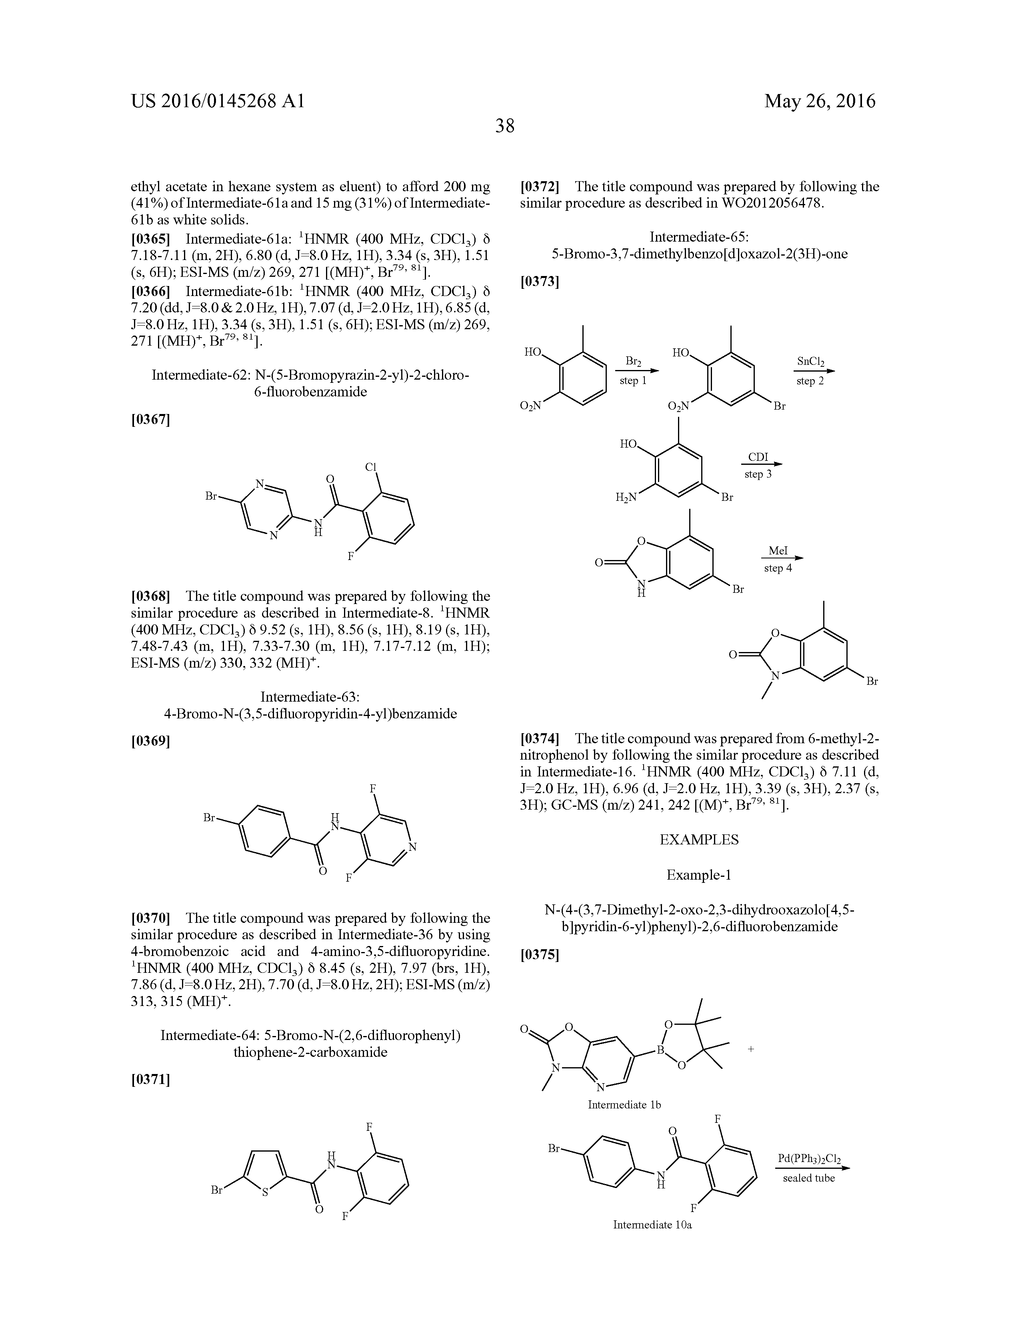 SUBSTITUTED HETEROCYCLIC COMPOUNDS AS CRAC MODULATORS - diagram, schematic, and image 39